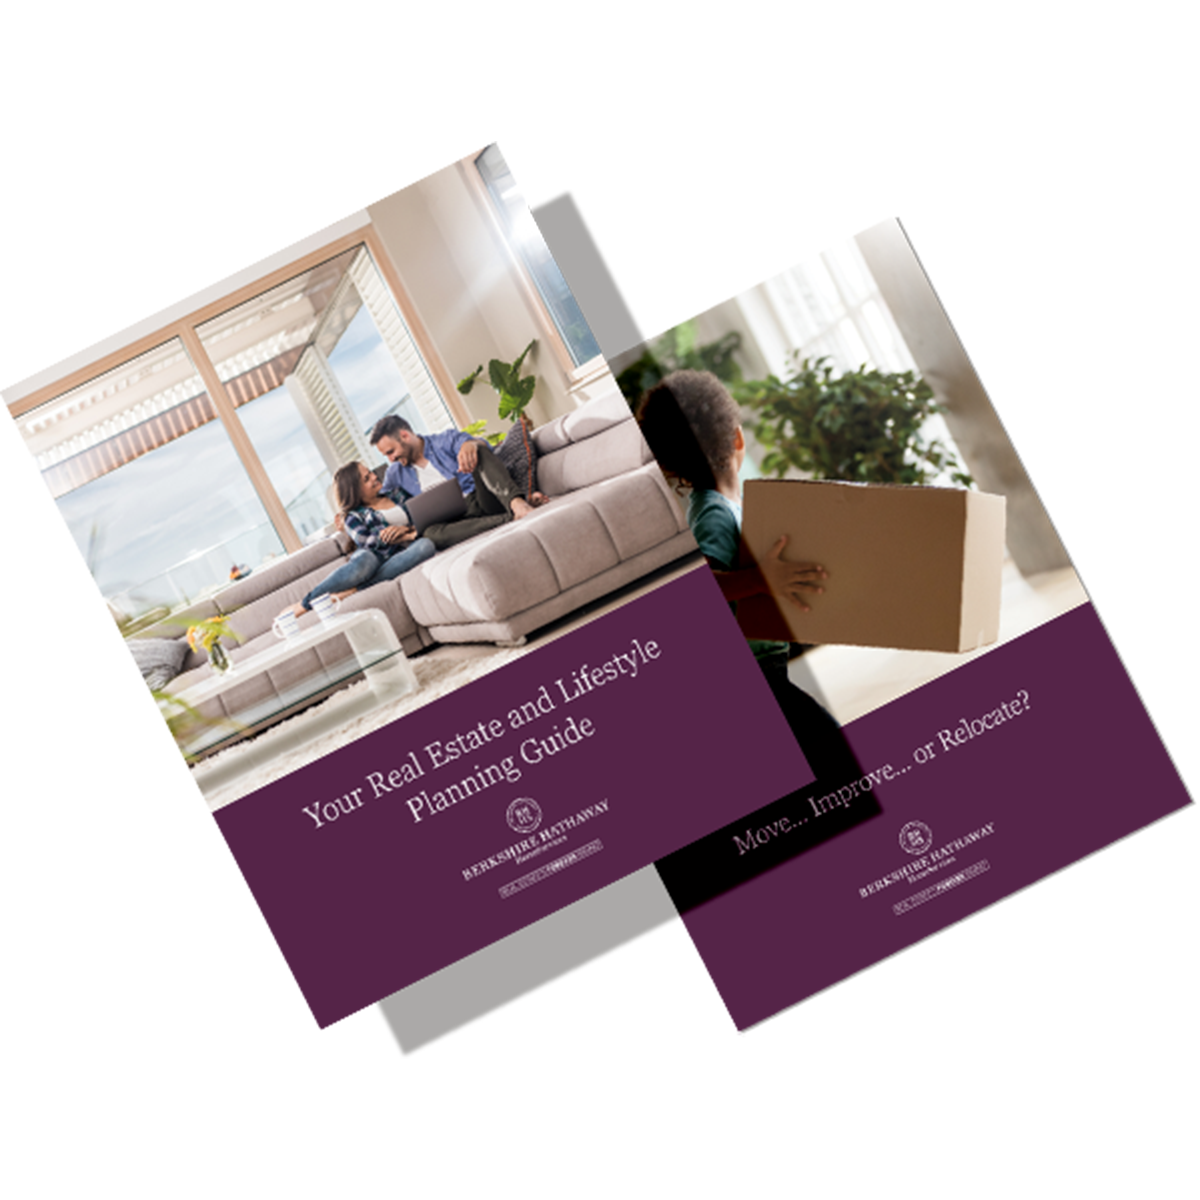 preview of planning guides for real estate consumers